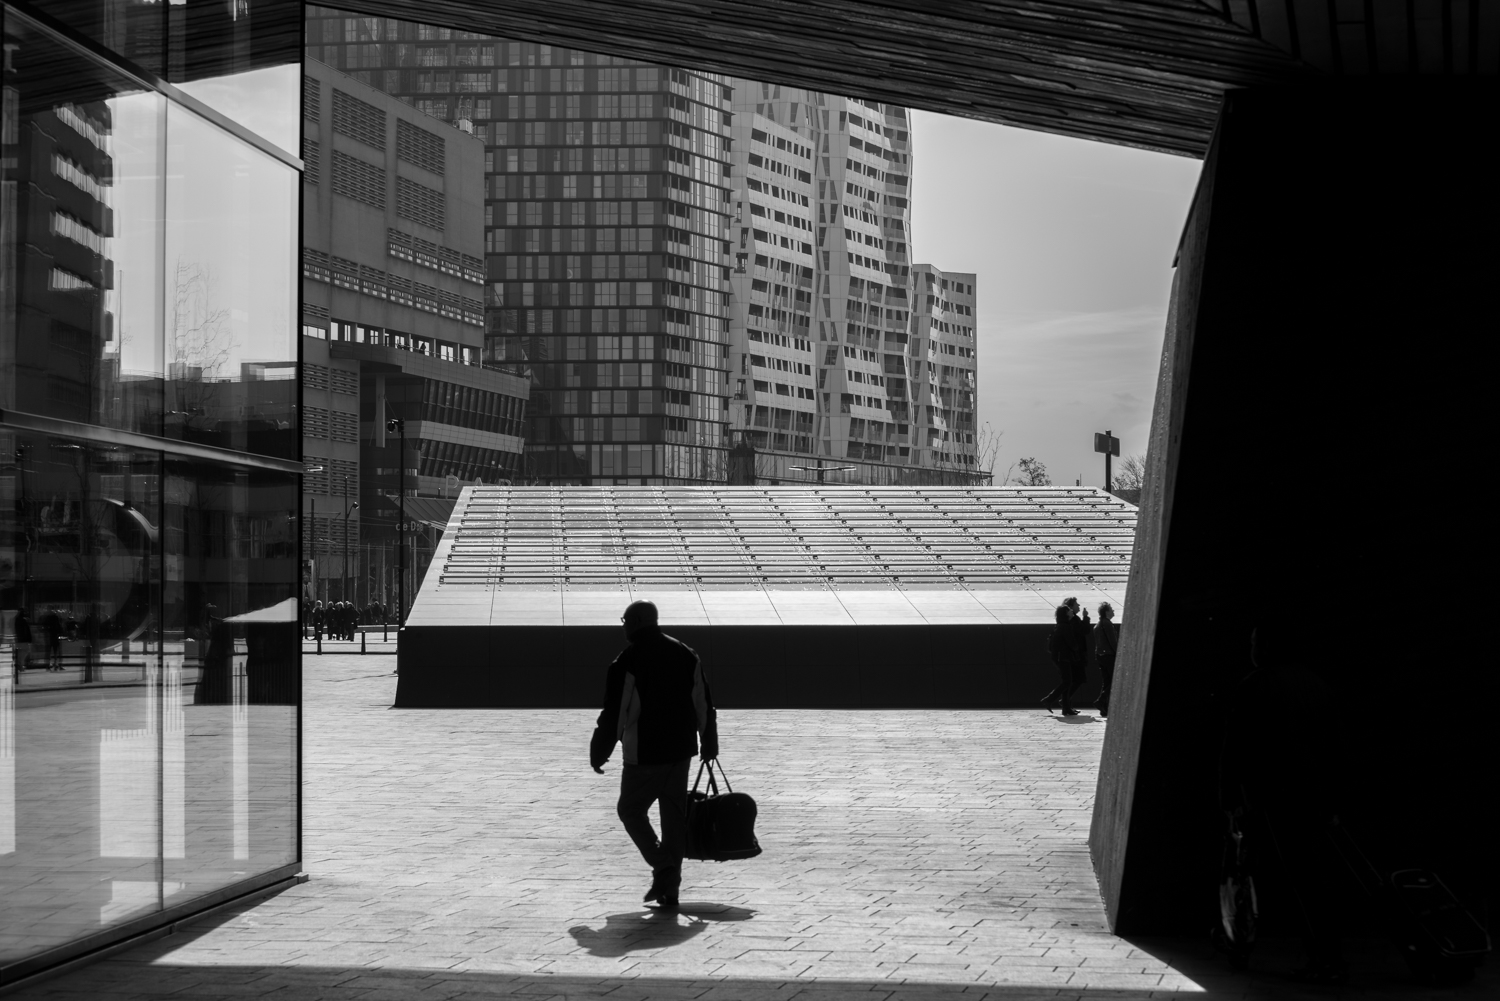 Include people in cityscape photography photographs